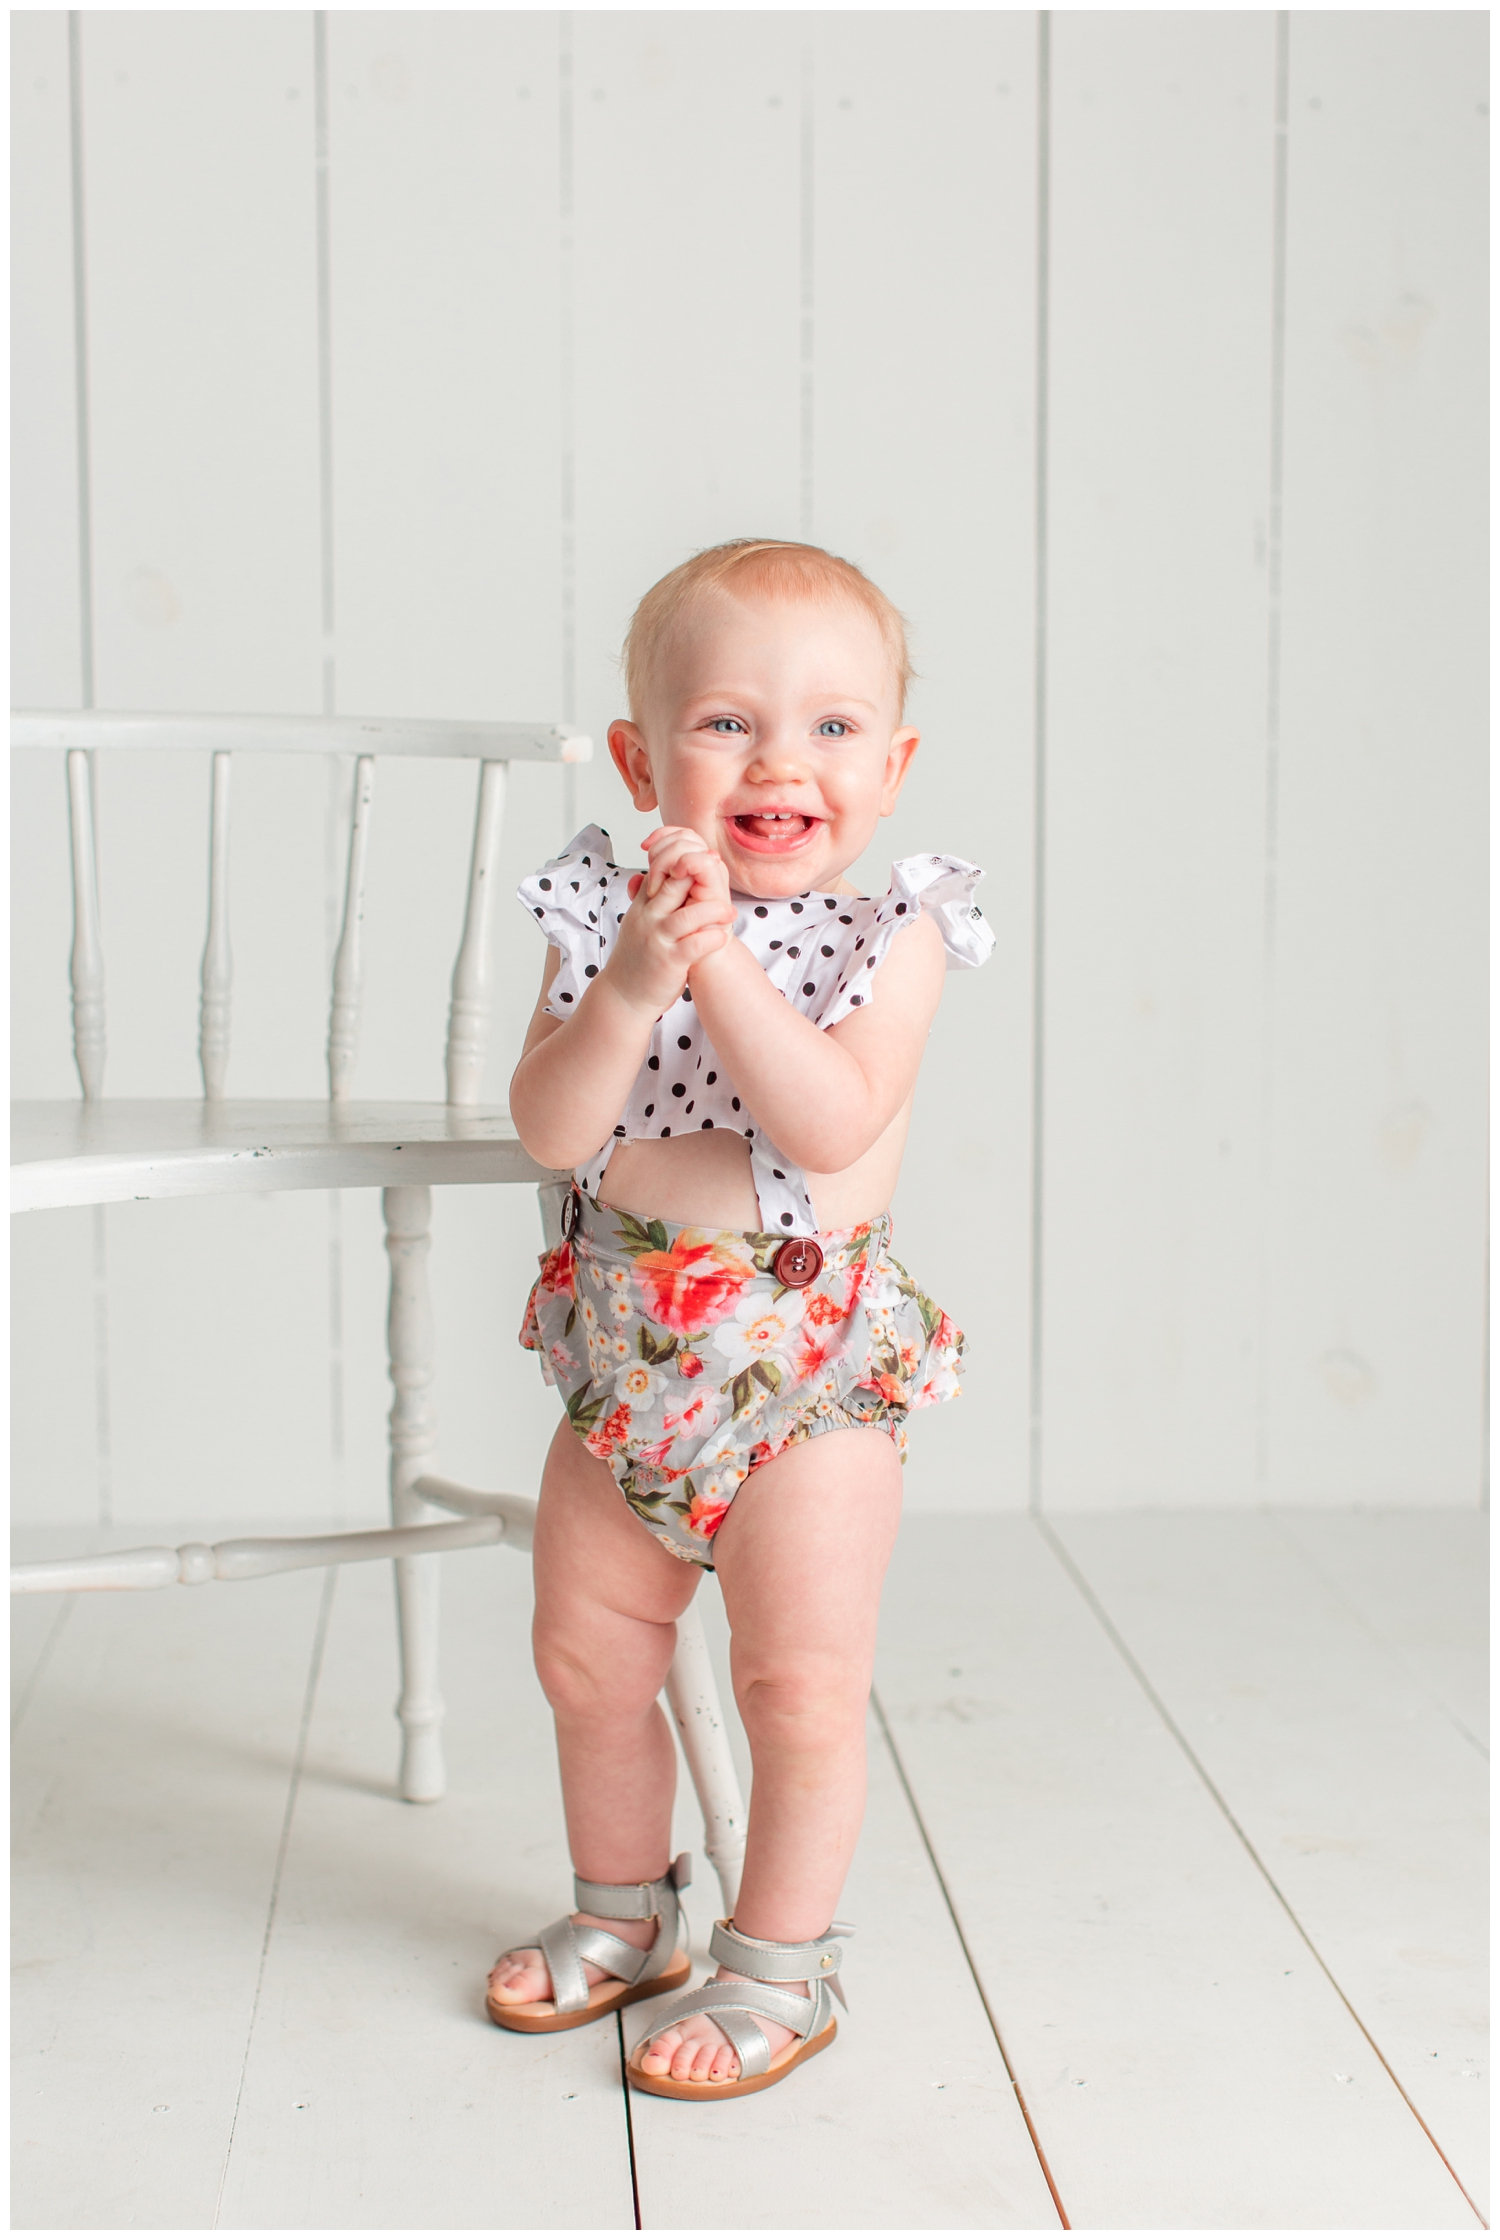 One year old baby girl standing on a white wood background wearing a floral and polka dot romper, smiling and clasping her hands | Iowa Baby Photographer | CB Studio